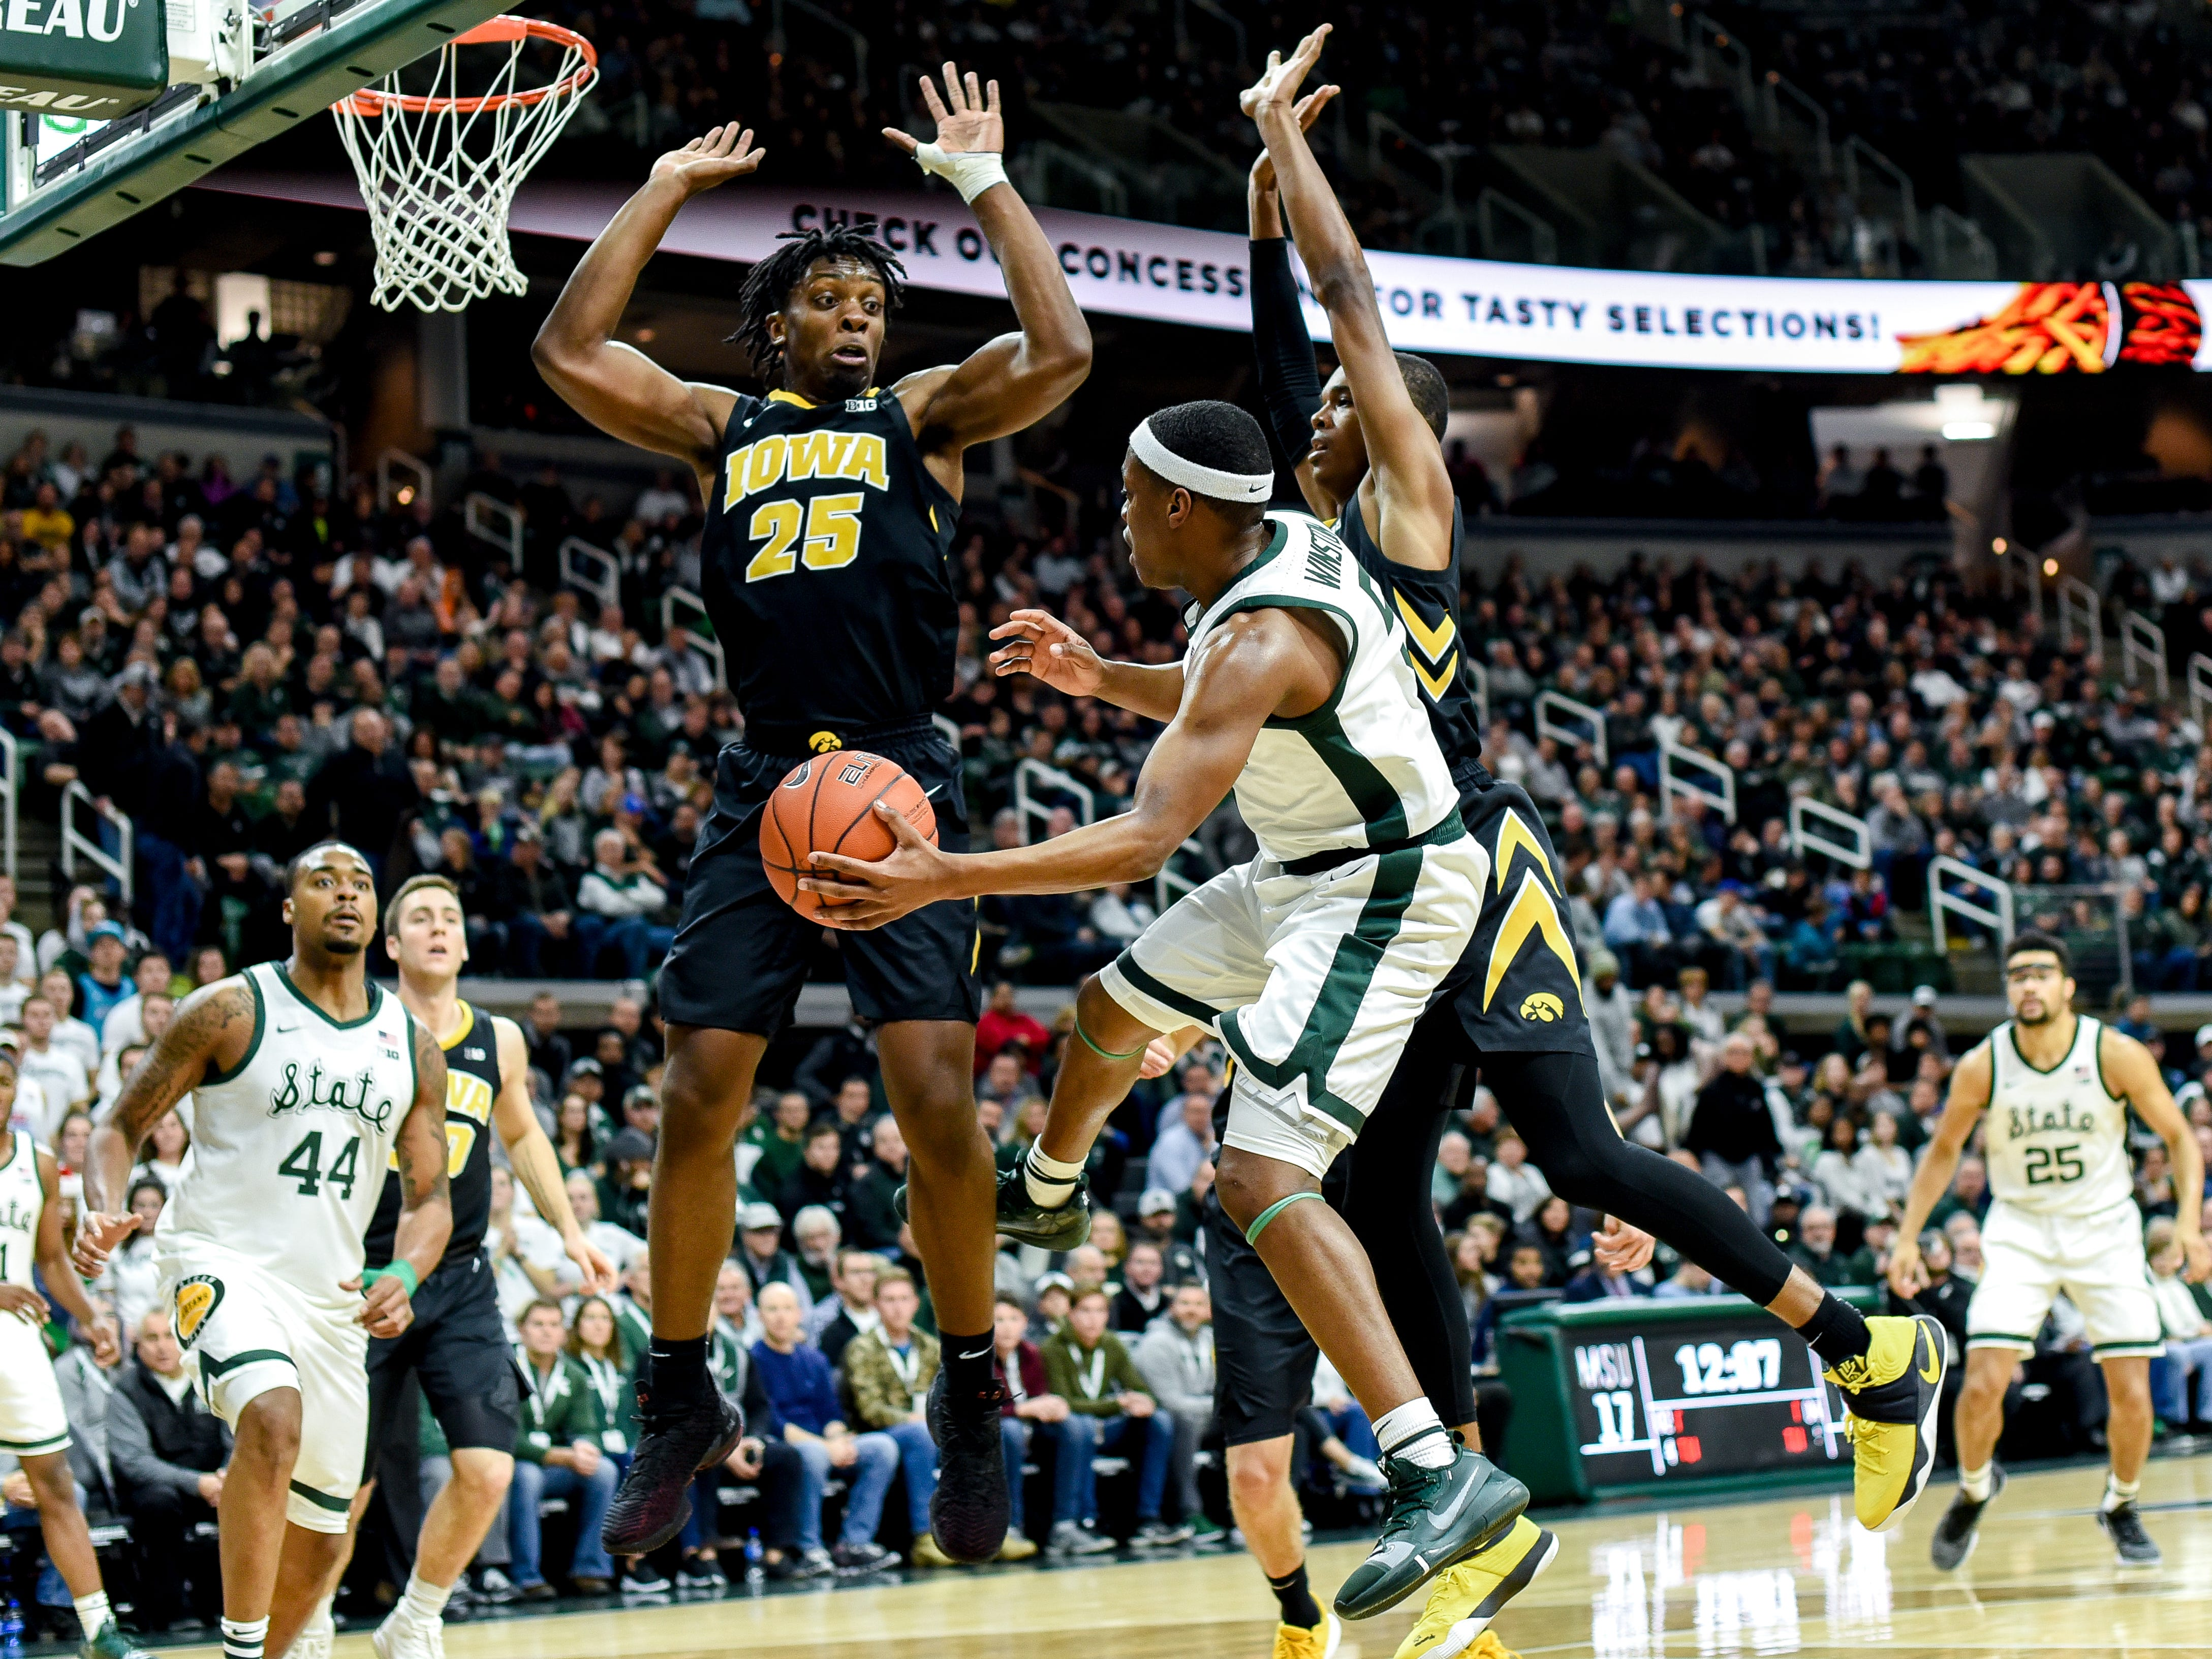 Michigan State's Cassius Winston, center, passes the ball to Nick Ward as Iowa's Tyler Cook, left, and Maishe Dailey during the first half on Monday, Dec. 3, 2018, at the Breslin Center in East Lansing.